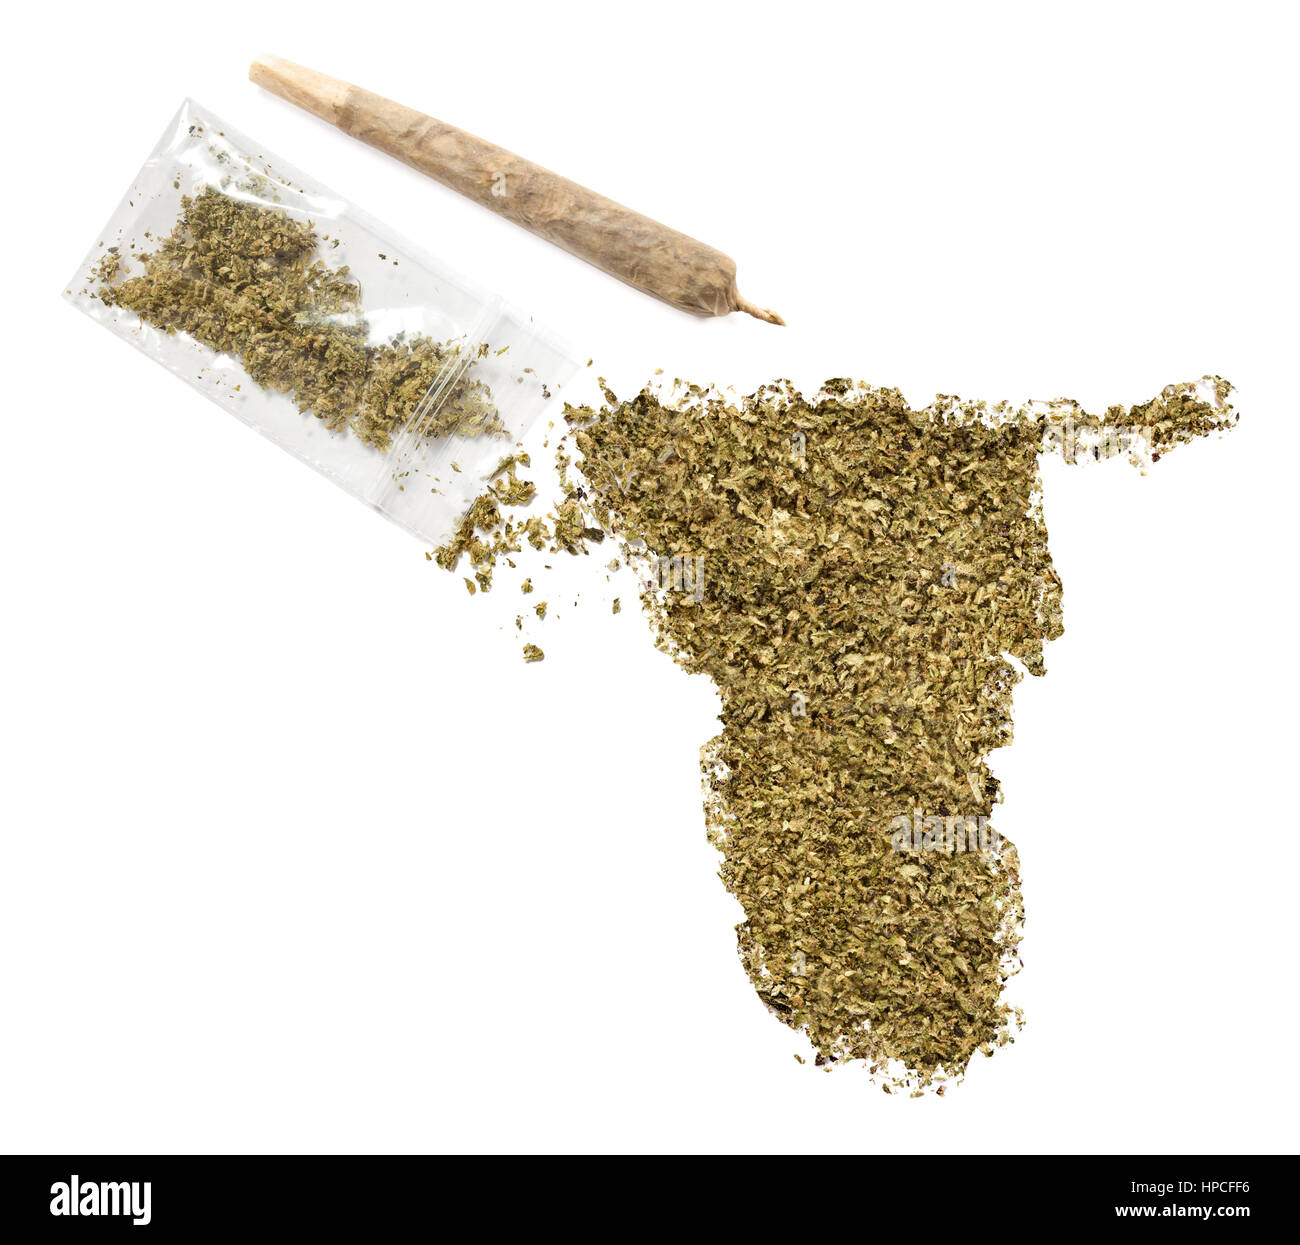 Grinded weed shaped as Namibia and a joint.(series) - Stock Image